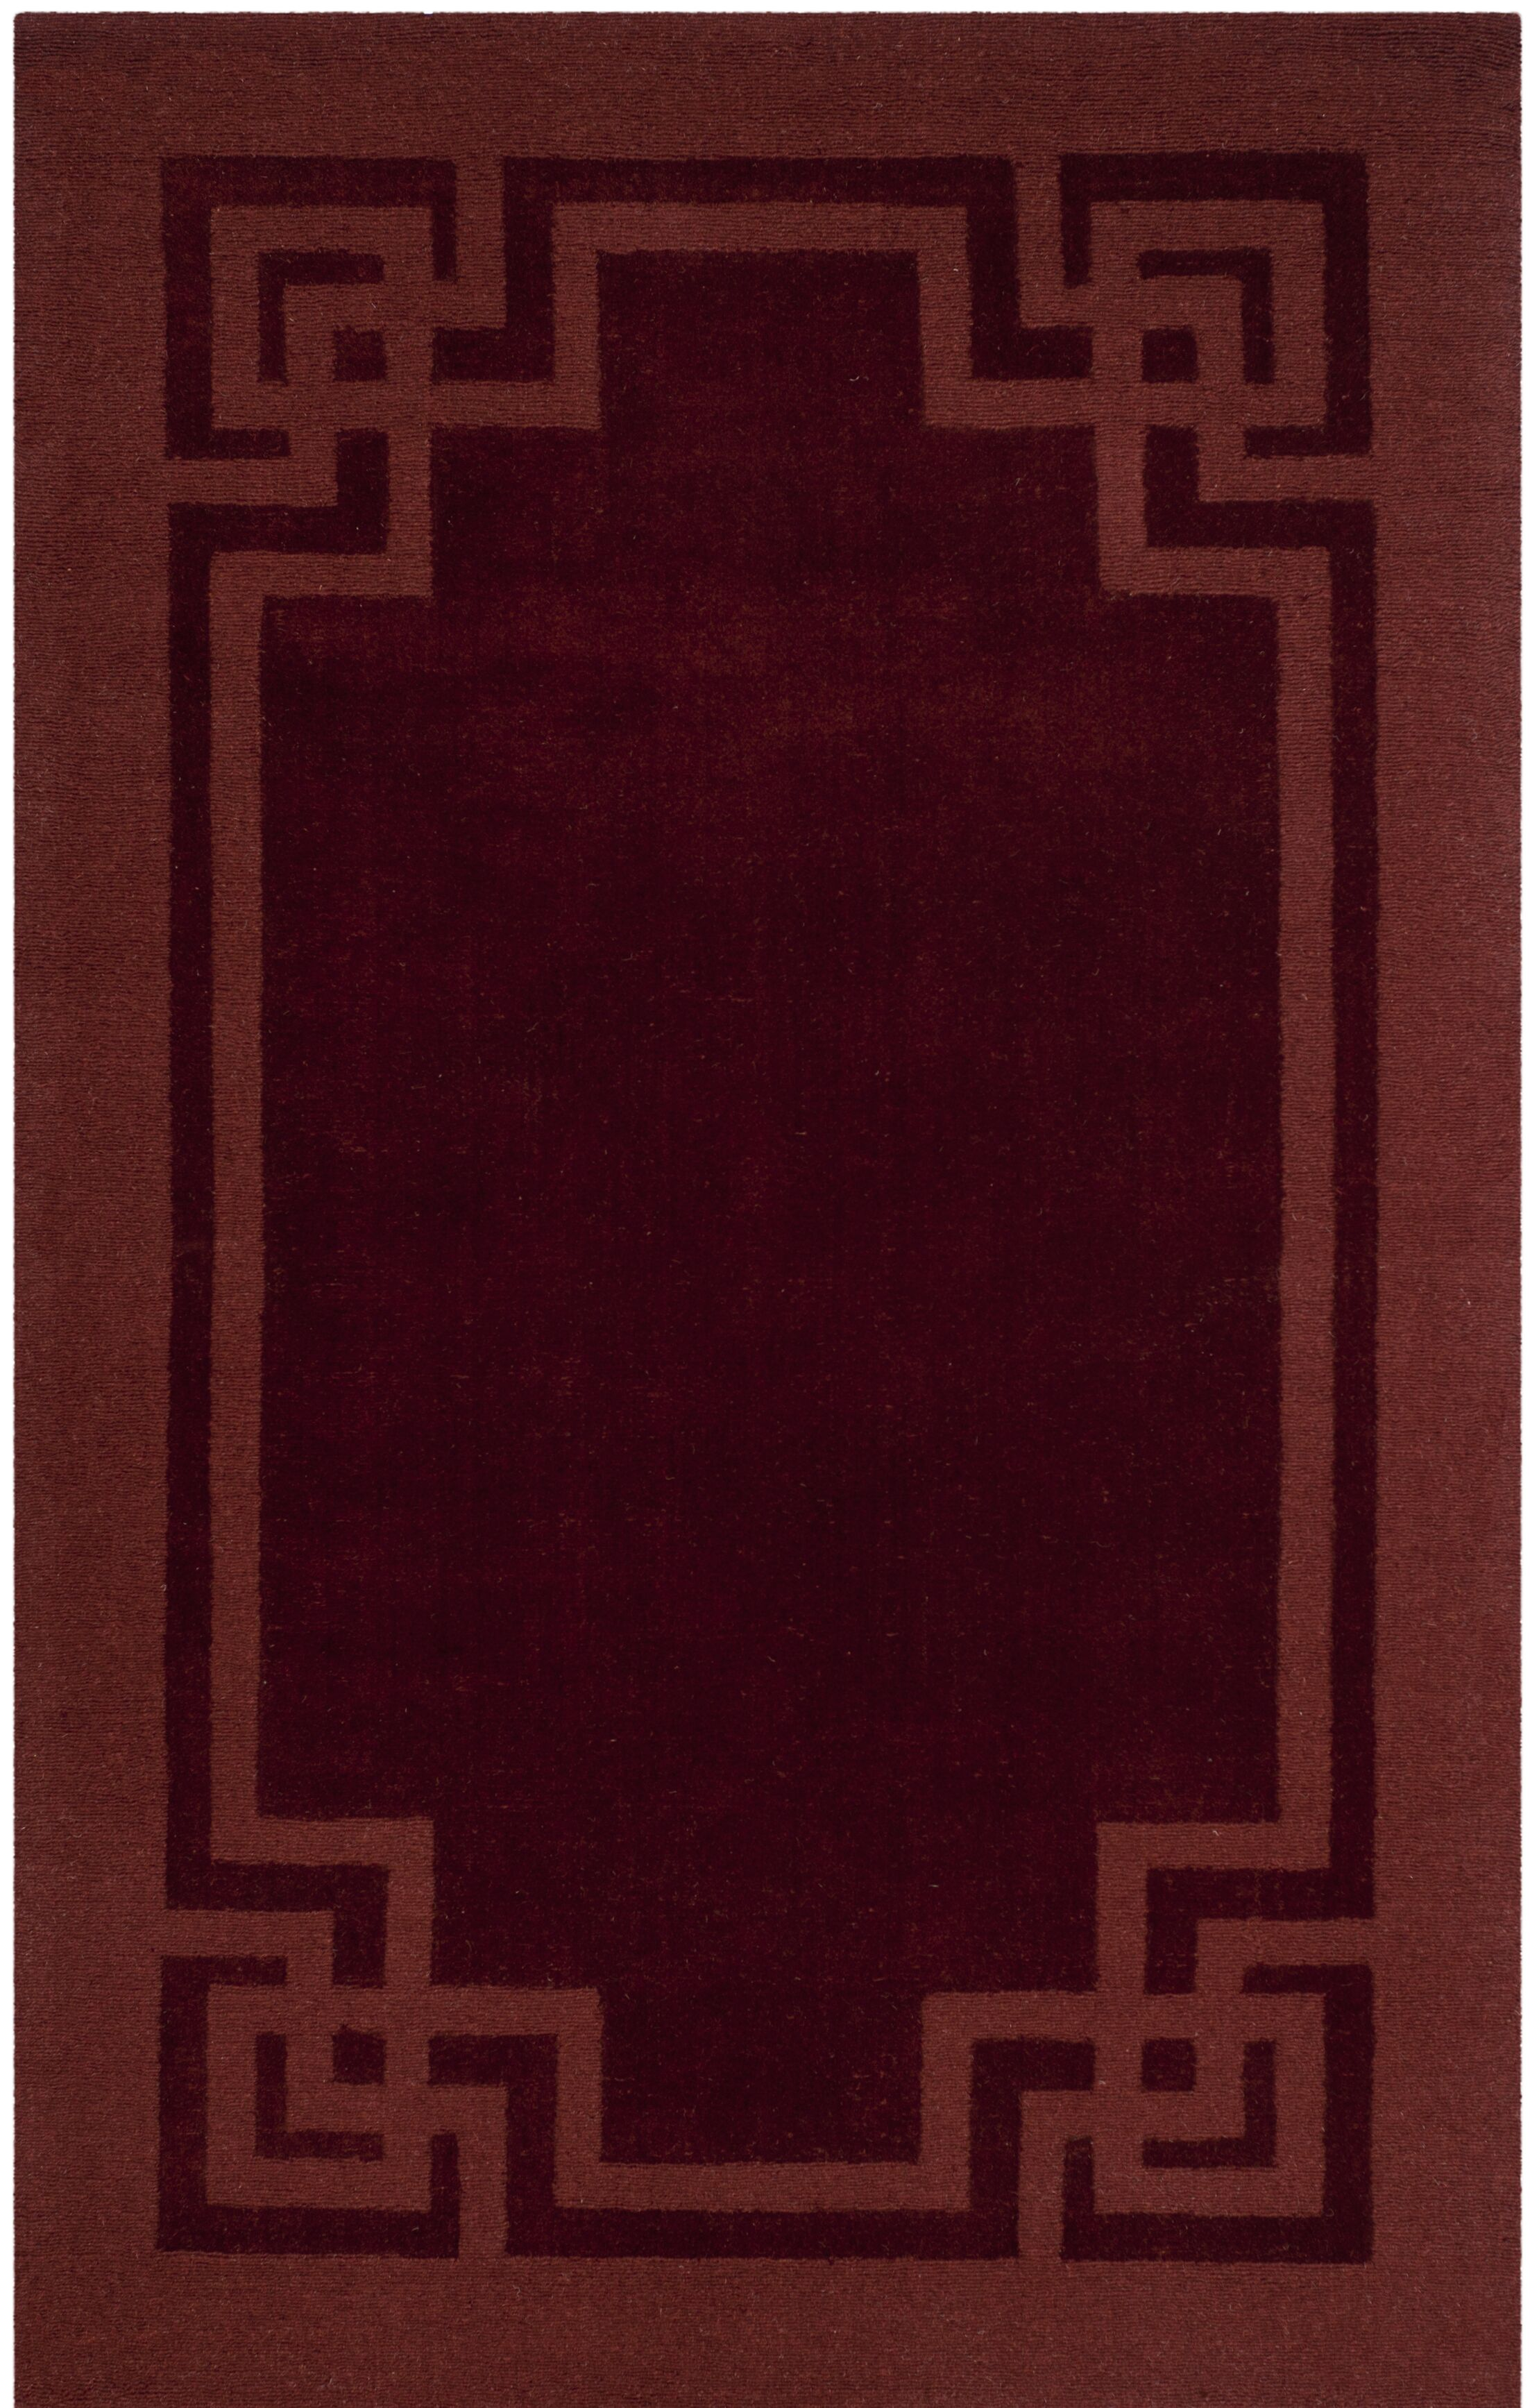 Deco Tufted-Hand-Loomed Red/Brown Area Rug Rug Size: Rectangle 8' x 10'